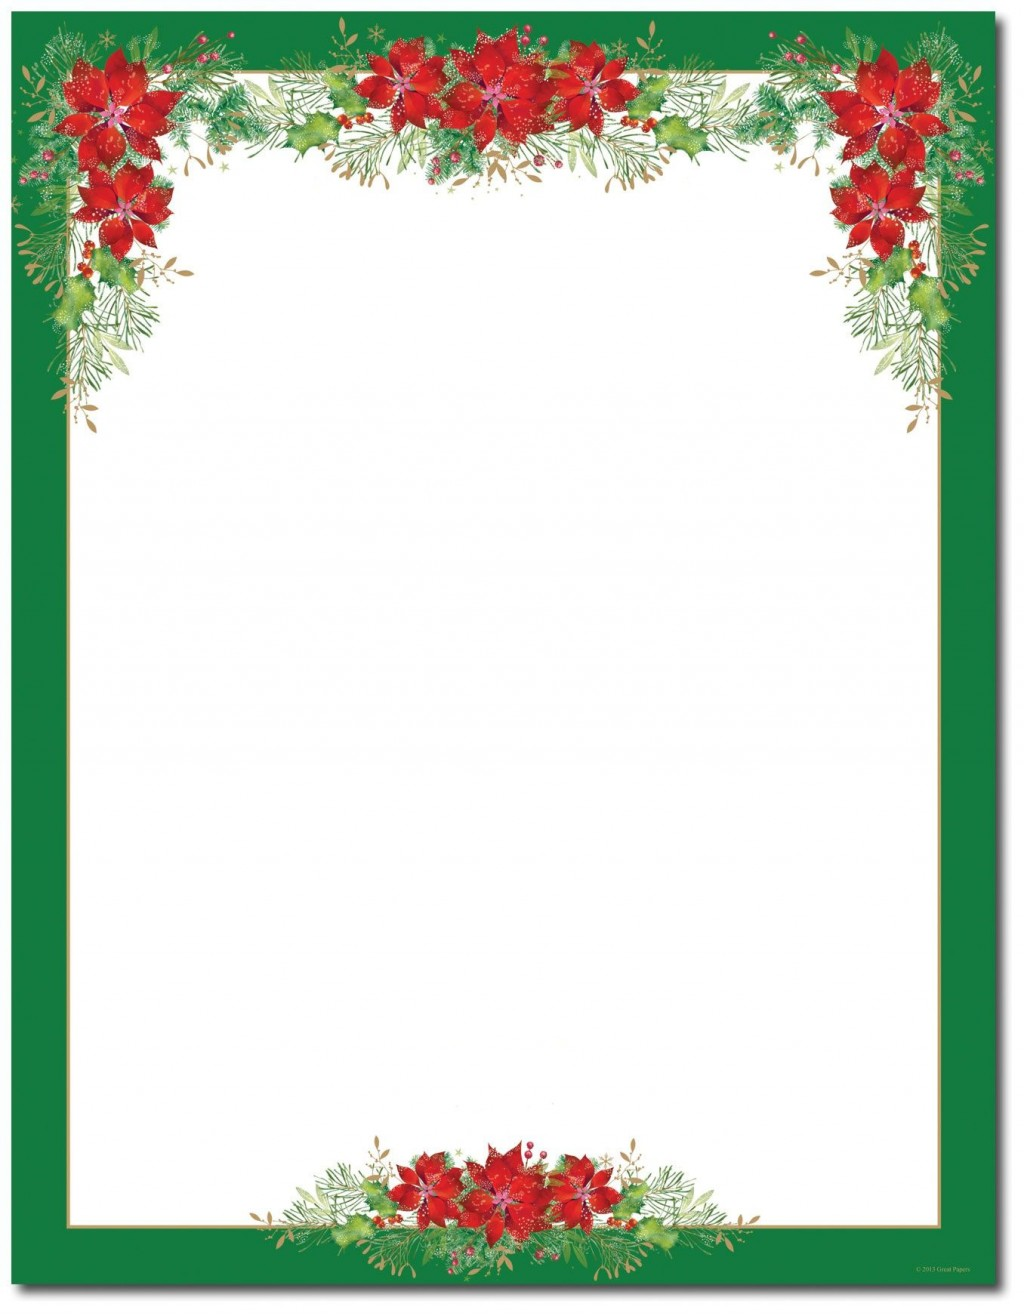 002 Imposing Christma Stationery Template Word Free Design  Religiou For DownloadableLarge